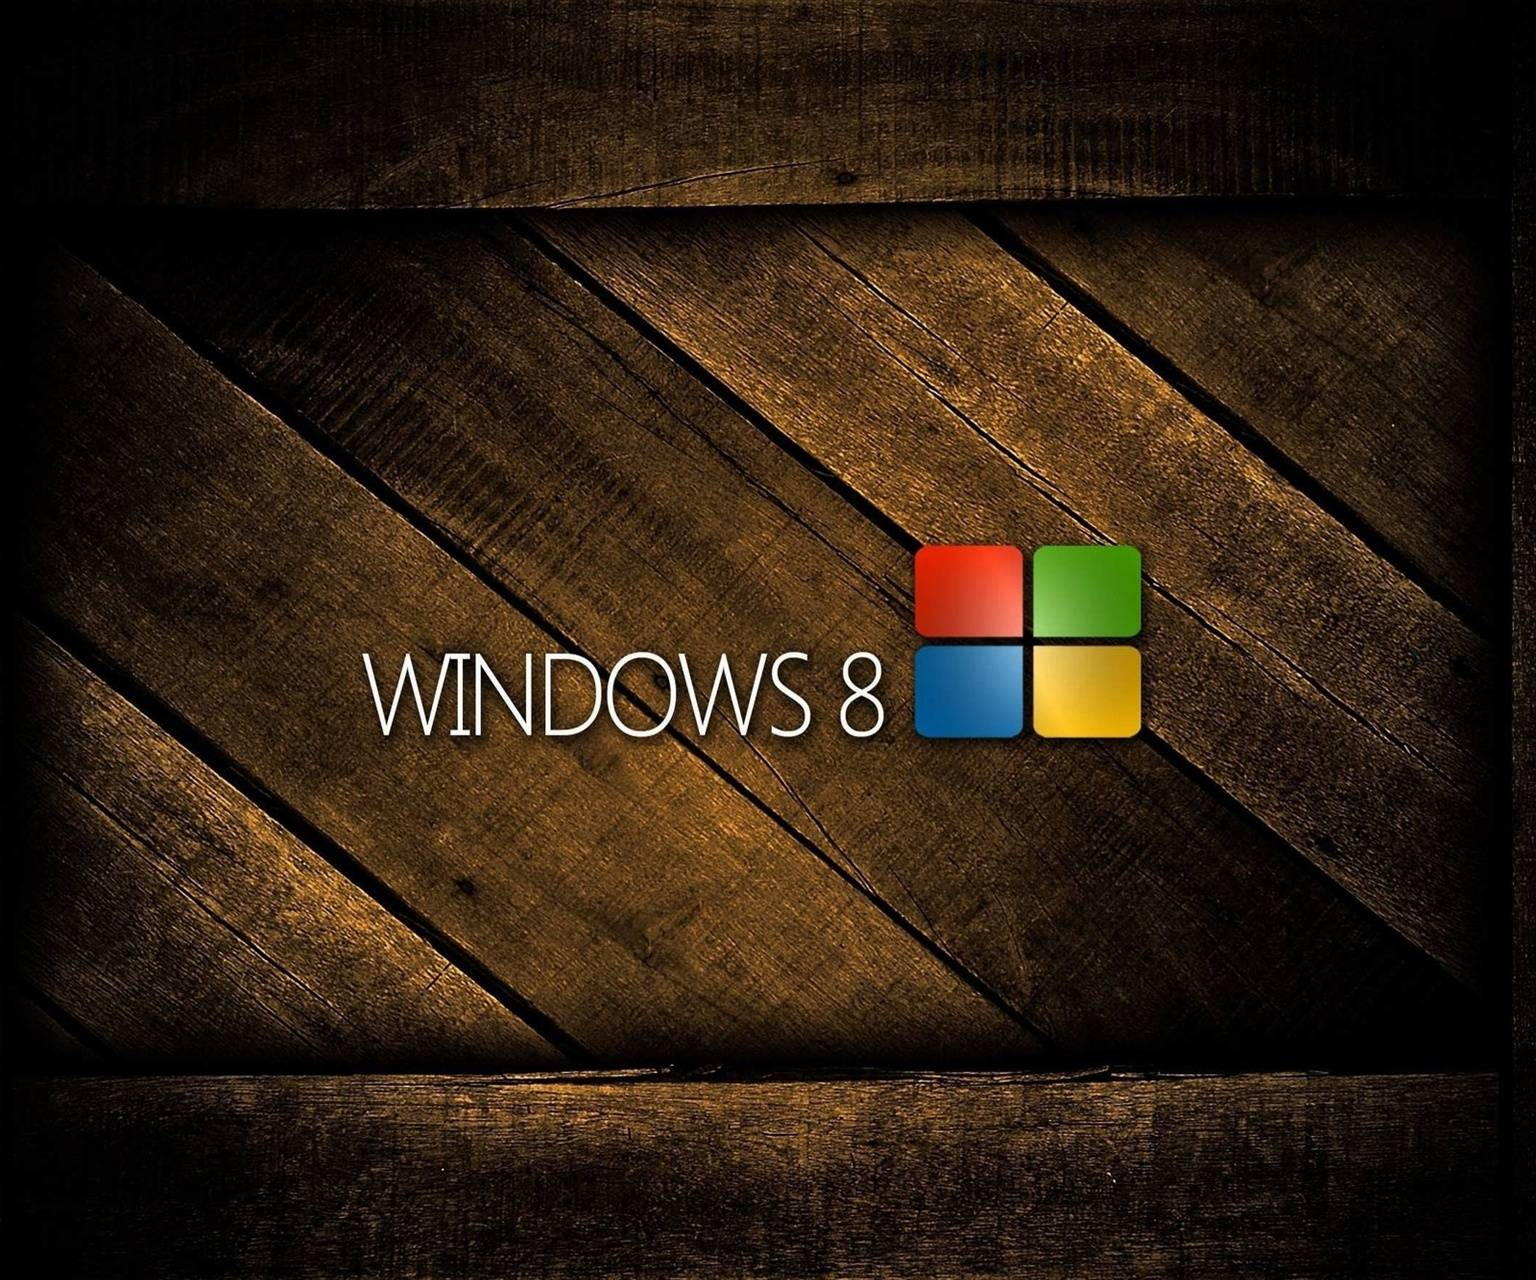 Windows 8 Wallpaper by Smile4ever_ - 5e - Free on ZEDGE™